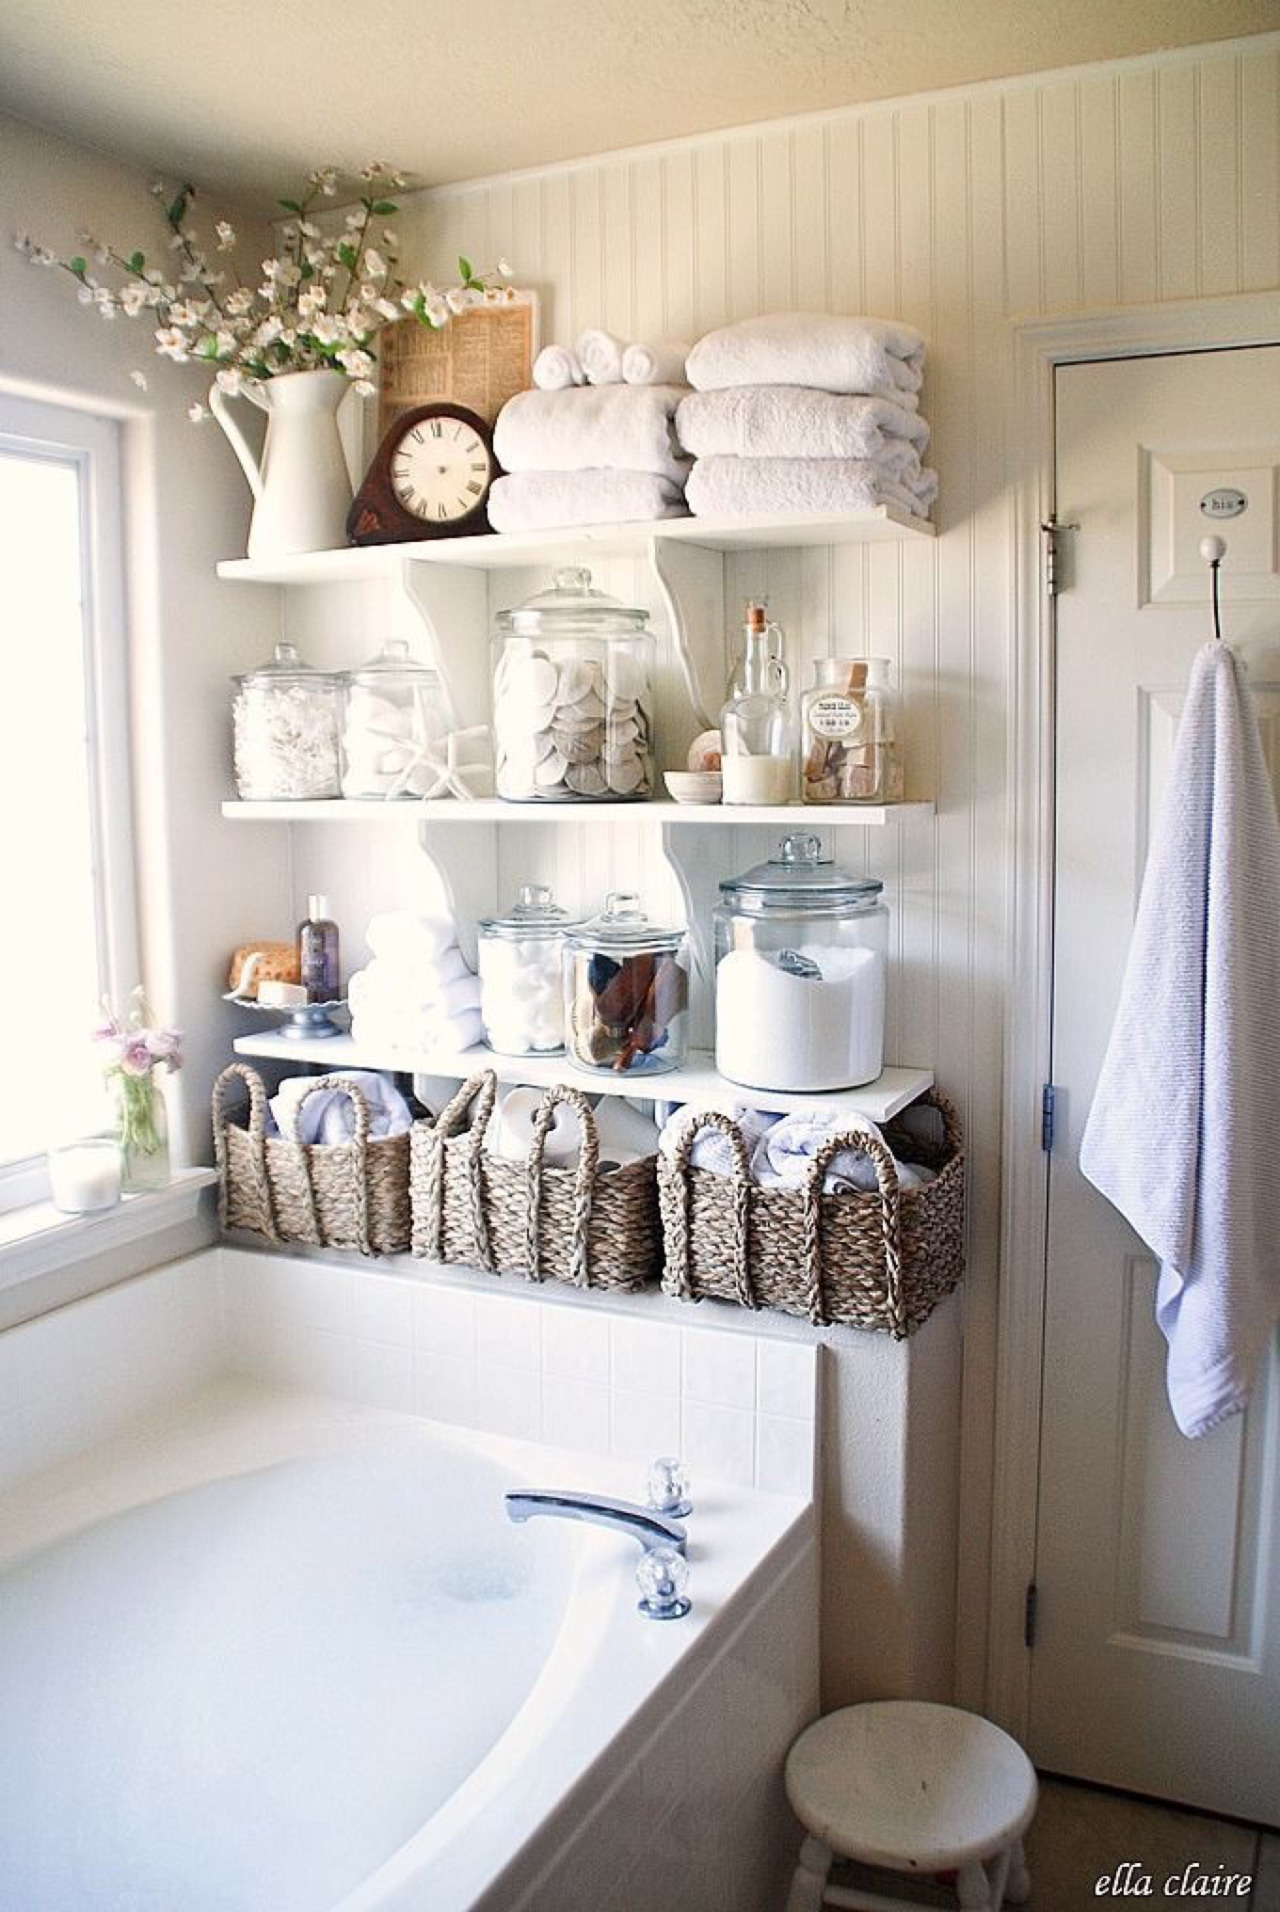 Bathroom wall storage baskets - Bottles And Baskets Bathroom Storage Ideas